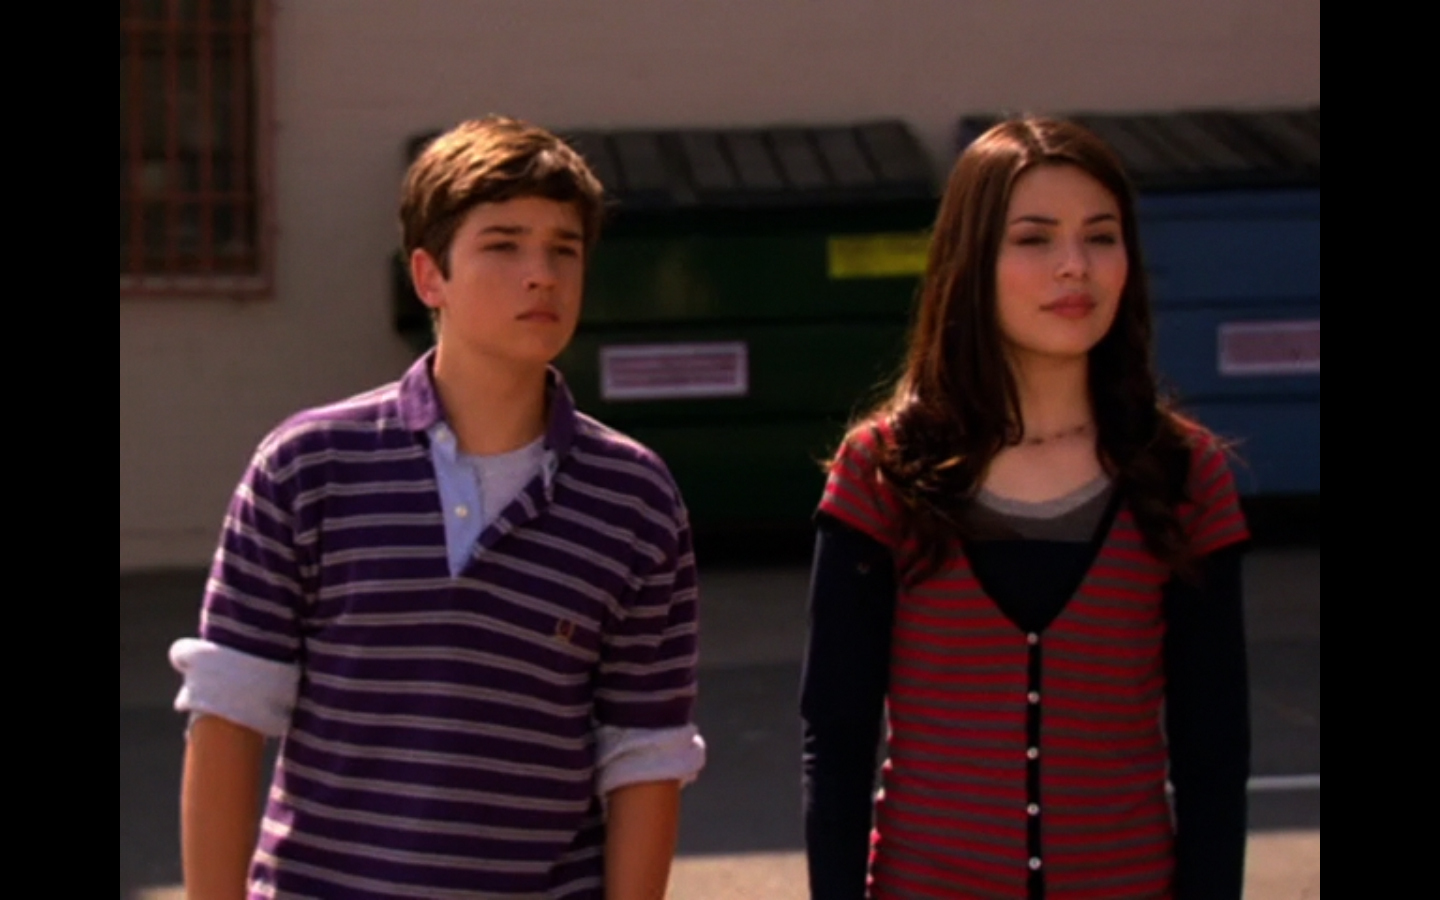 icarly dating freddie Hold your sauce freddie and sam are officially together, but involve carly in every single fight meanwhile, gibby's on a mission to break them up, carly starts dating a super smart guy, and the gang create a web feed that ends up shutting down icarly.